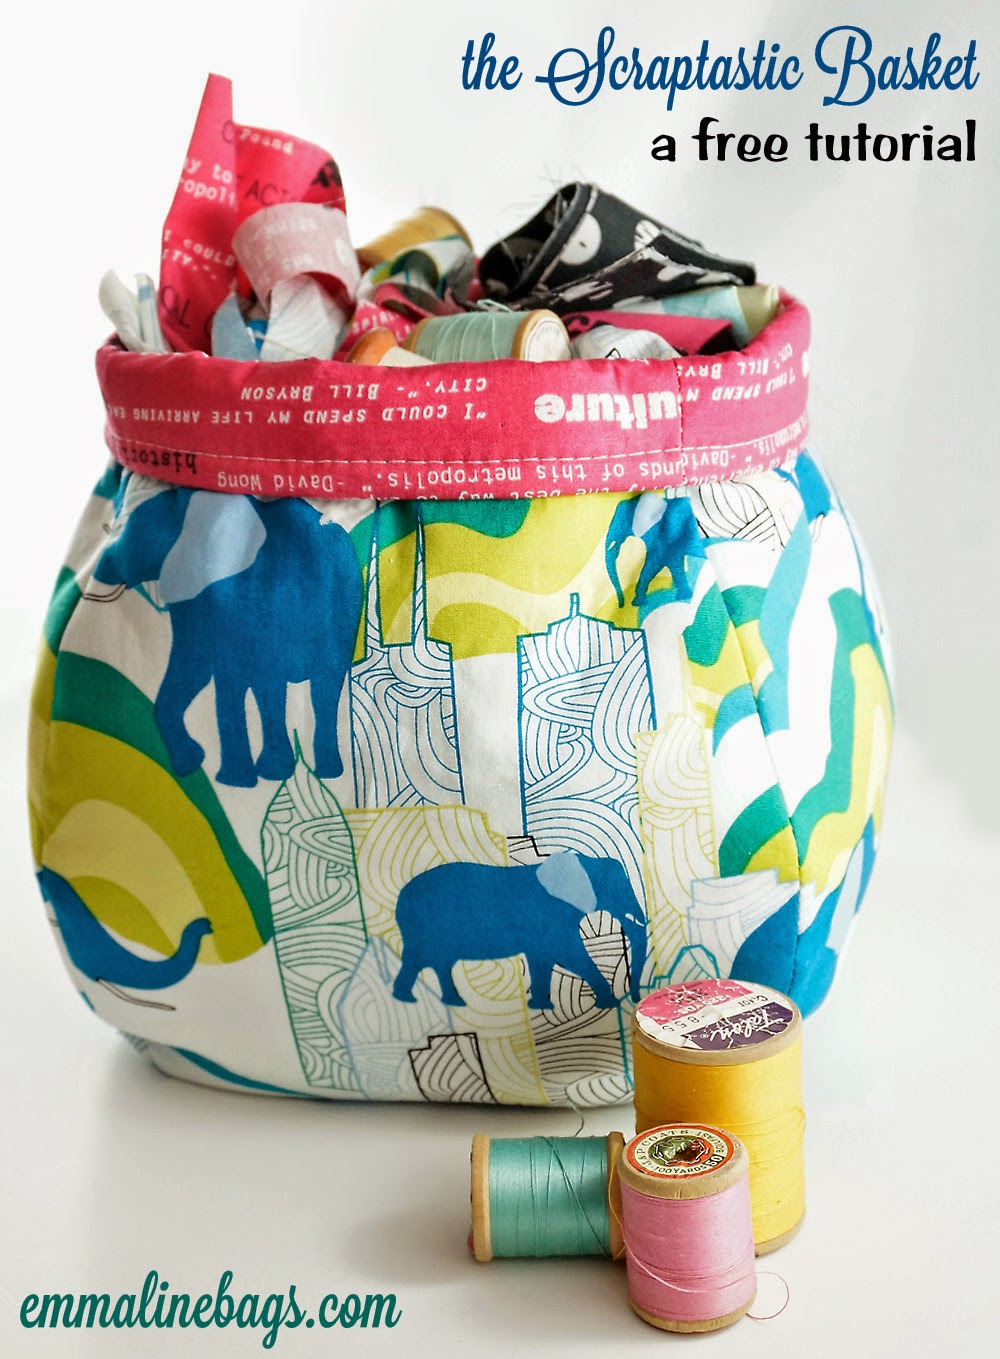 FREE SEWING TUTORIAL: THE SCRAPTASTIC BASKET from Emmaline Bags